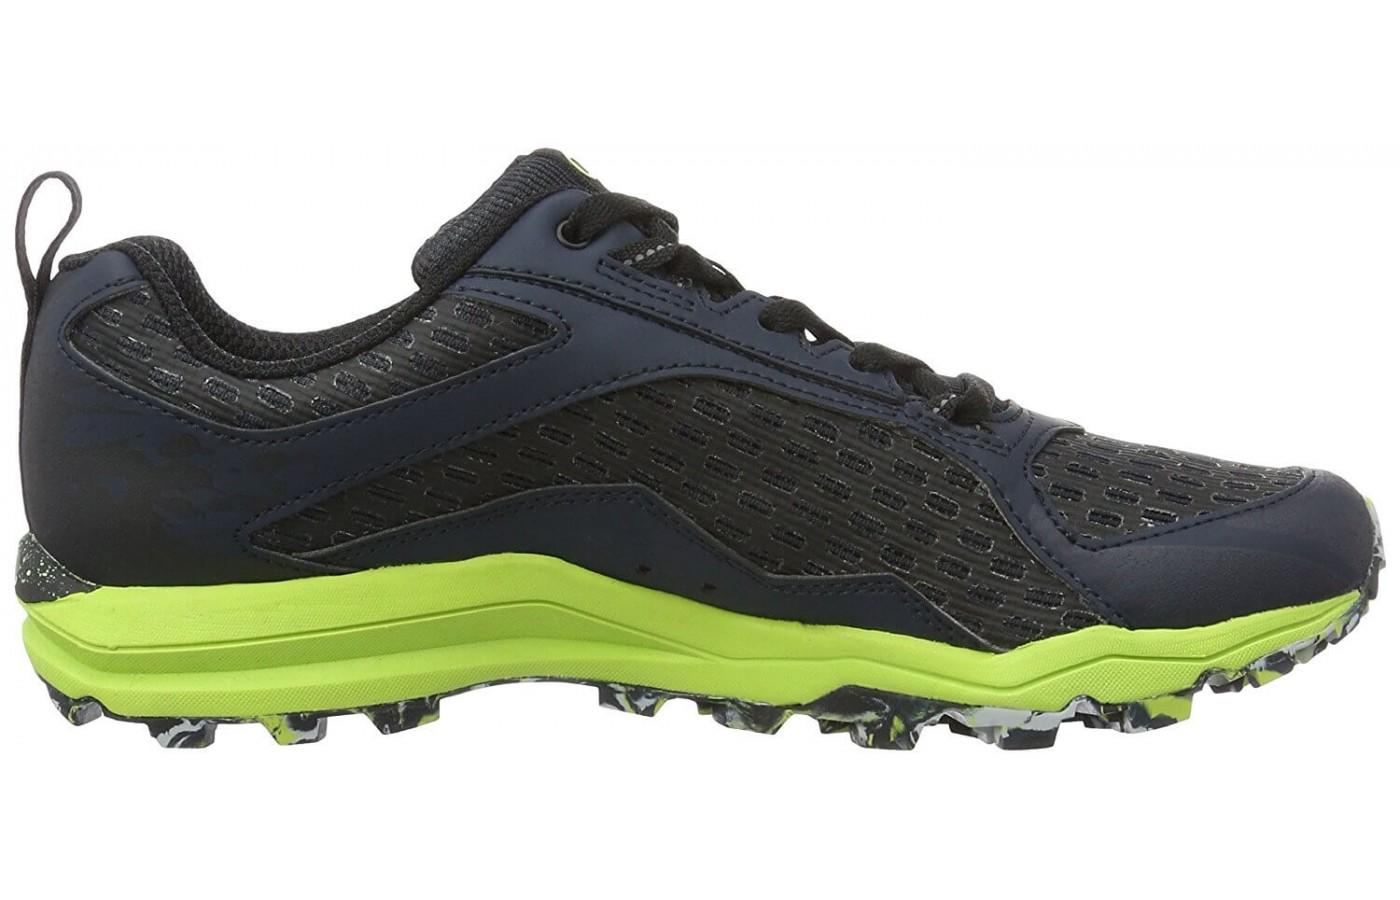 98b30939371 ... Merrell All Out Crush Tough Mudder has impressive lugs ...